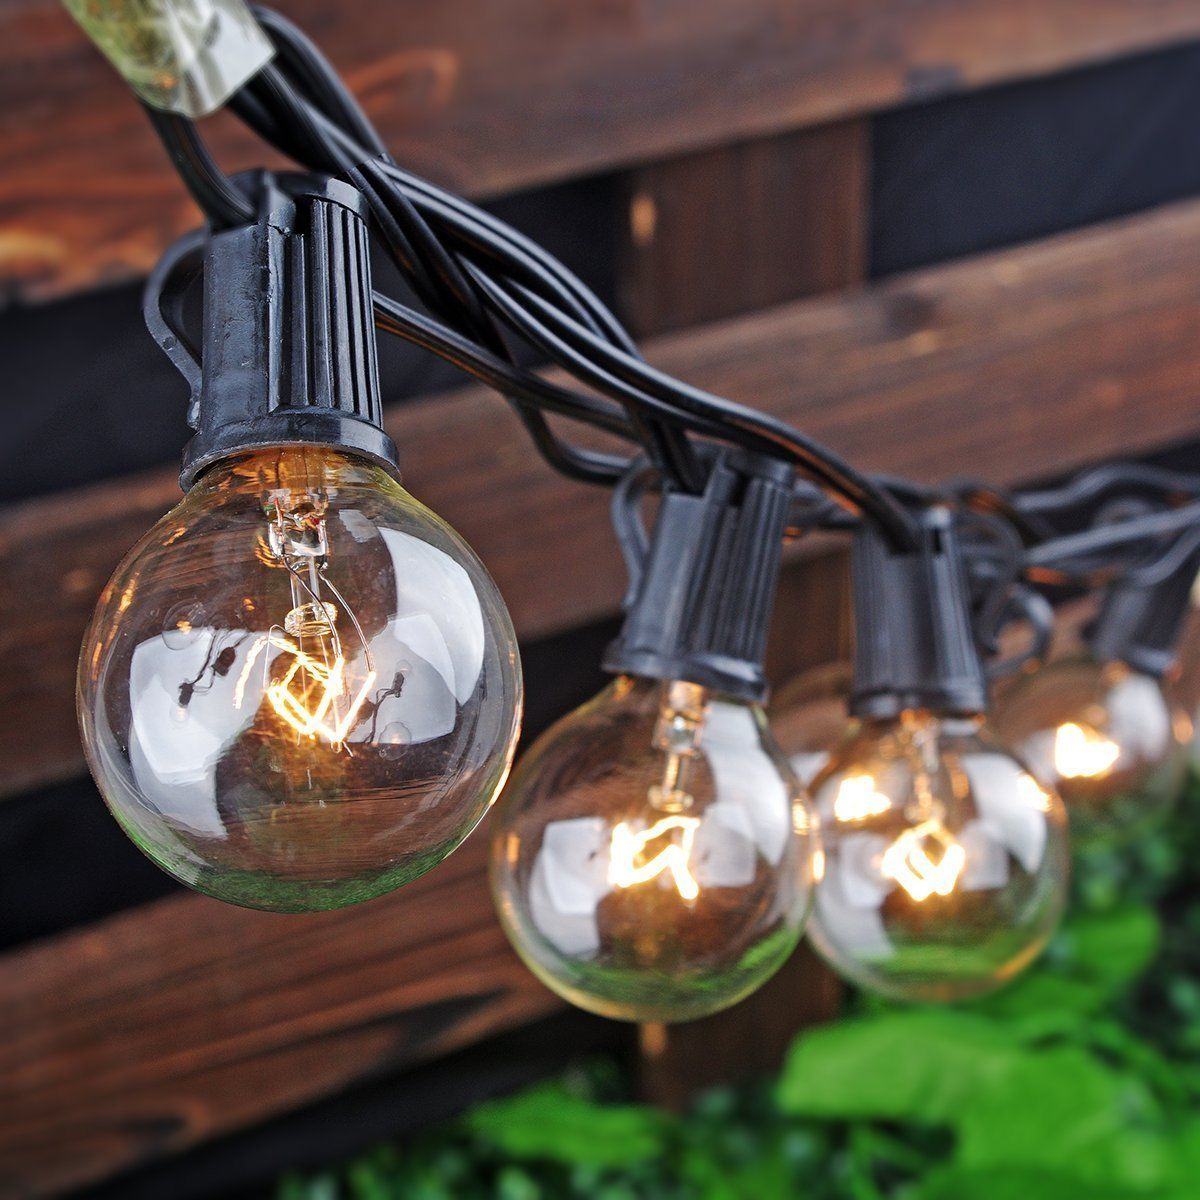 Clear Globe String Lights Set Of 25 G40 Bulbs : Set of 25 Clear Bulbs: 25 Ft G40 Outdoor String Lights Globe Bulb Xmas Party